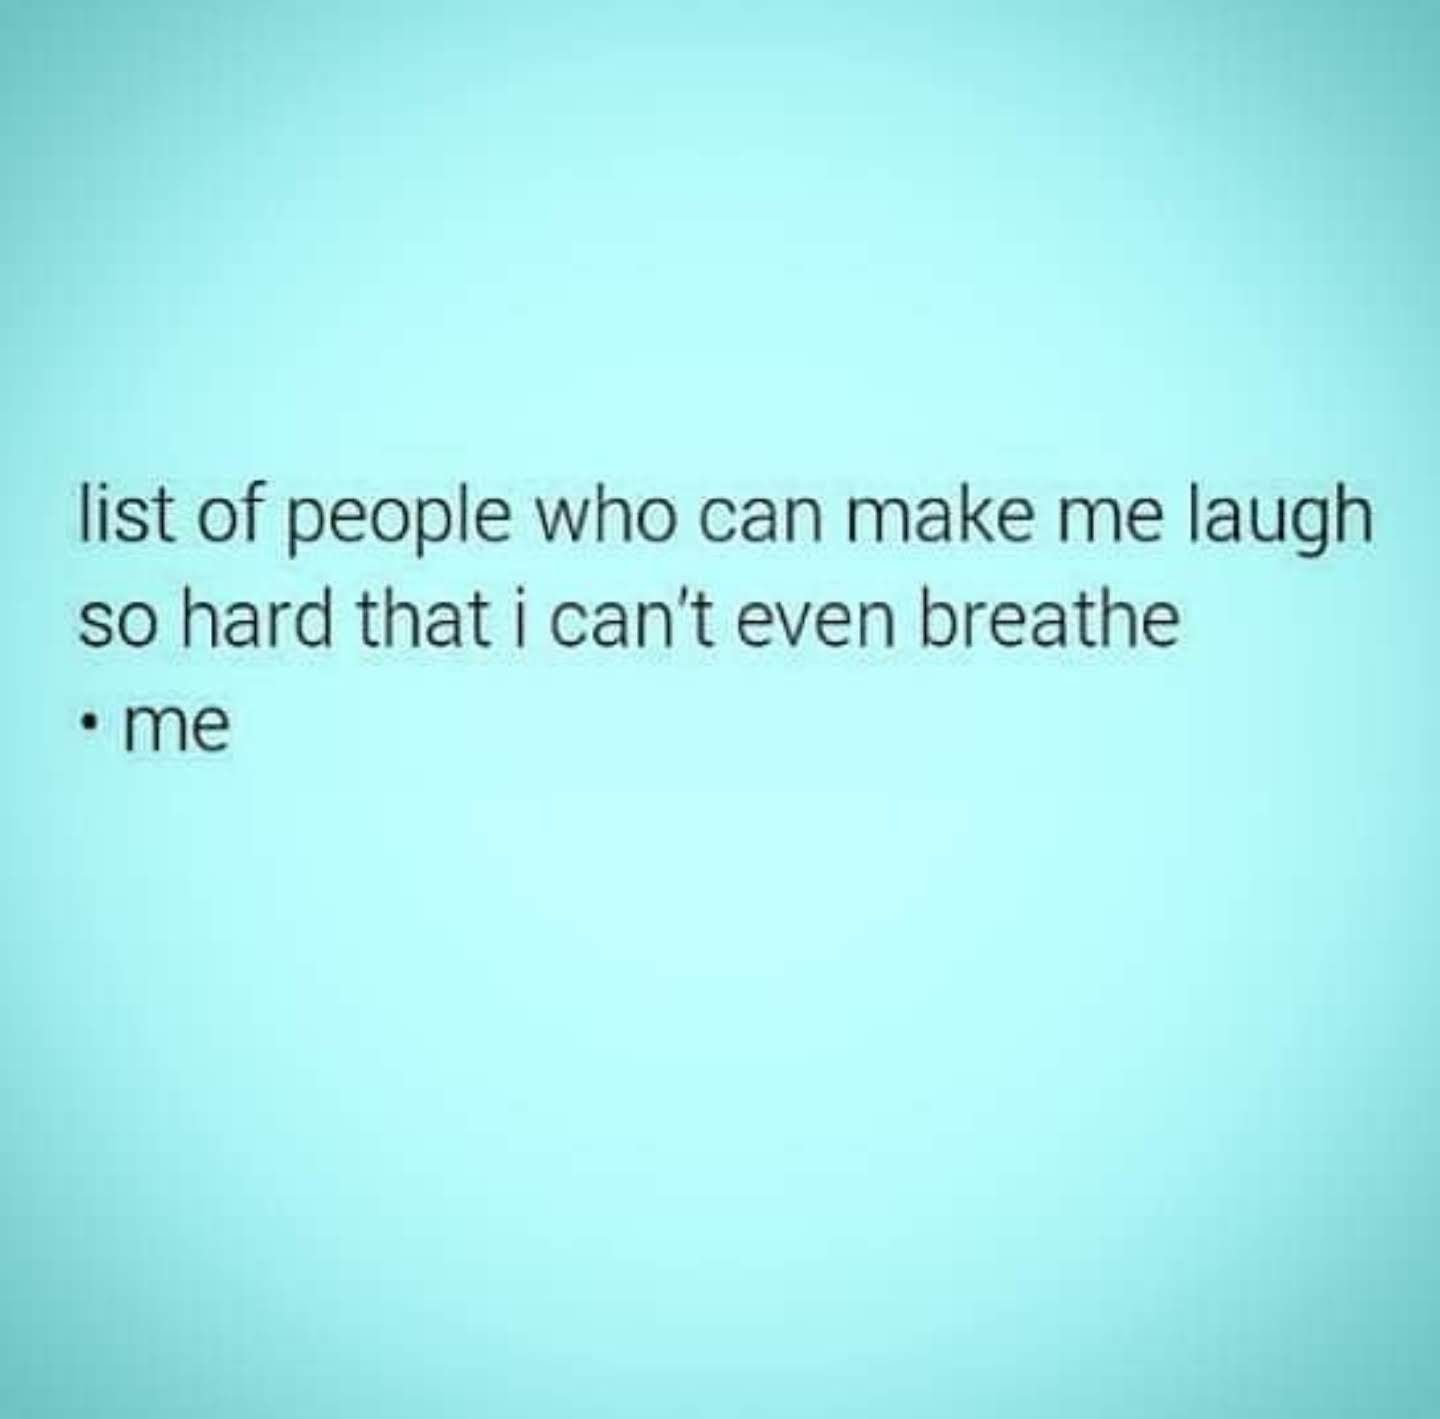 List of people who can make me laugh so hard that I can't